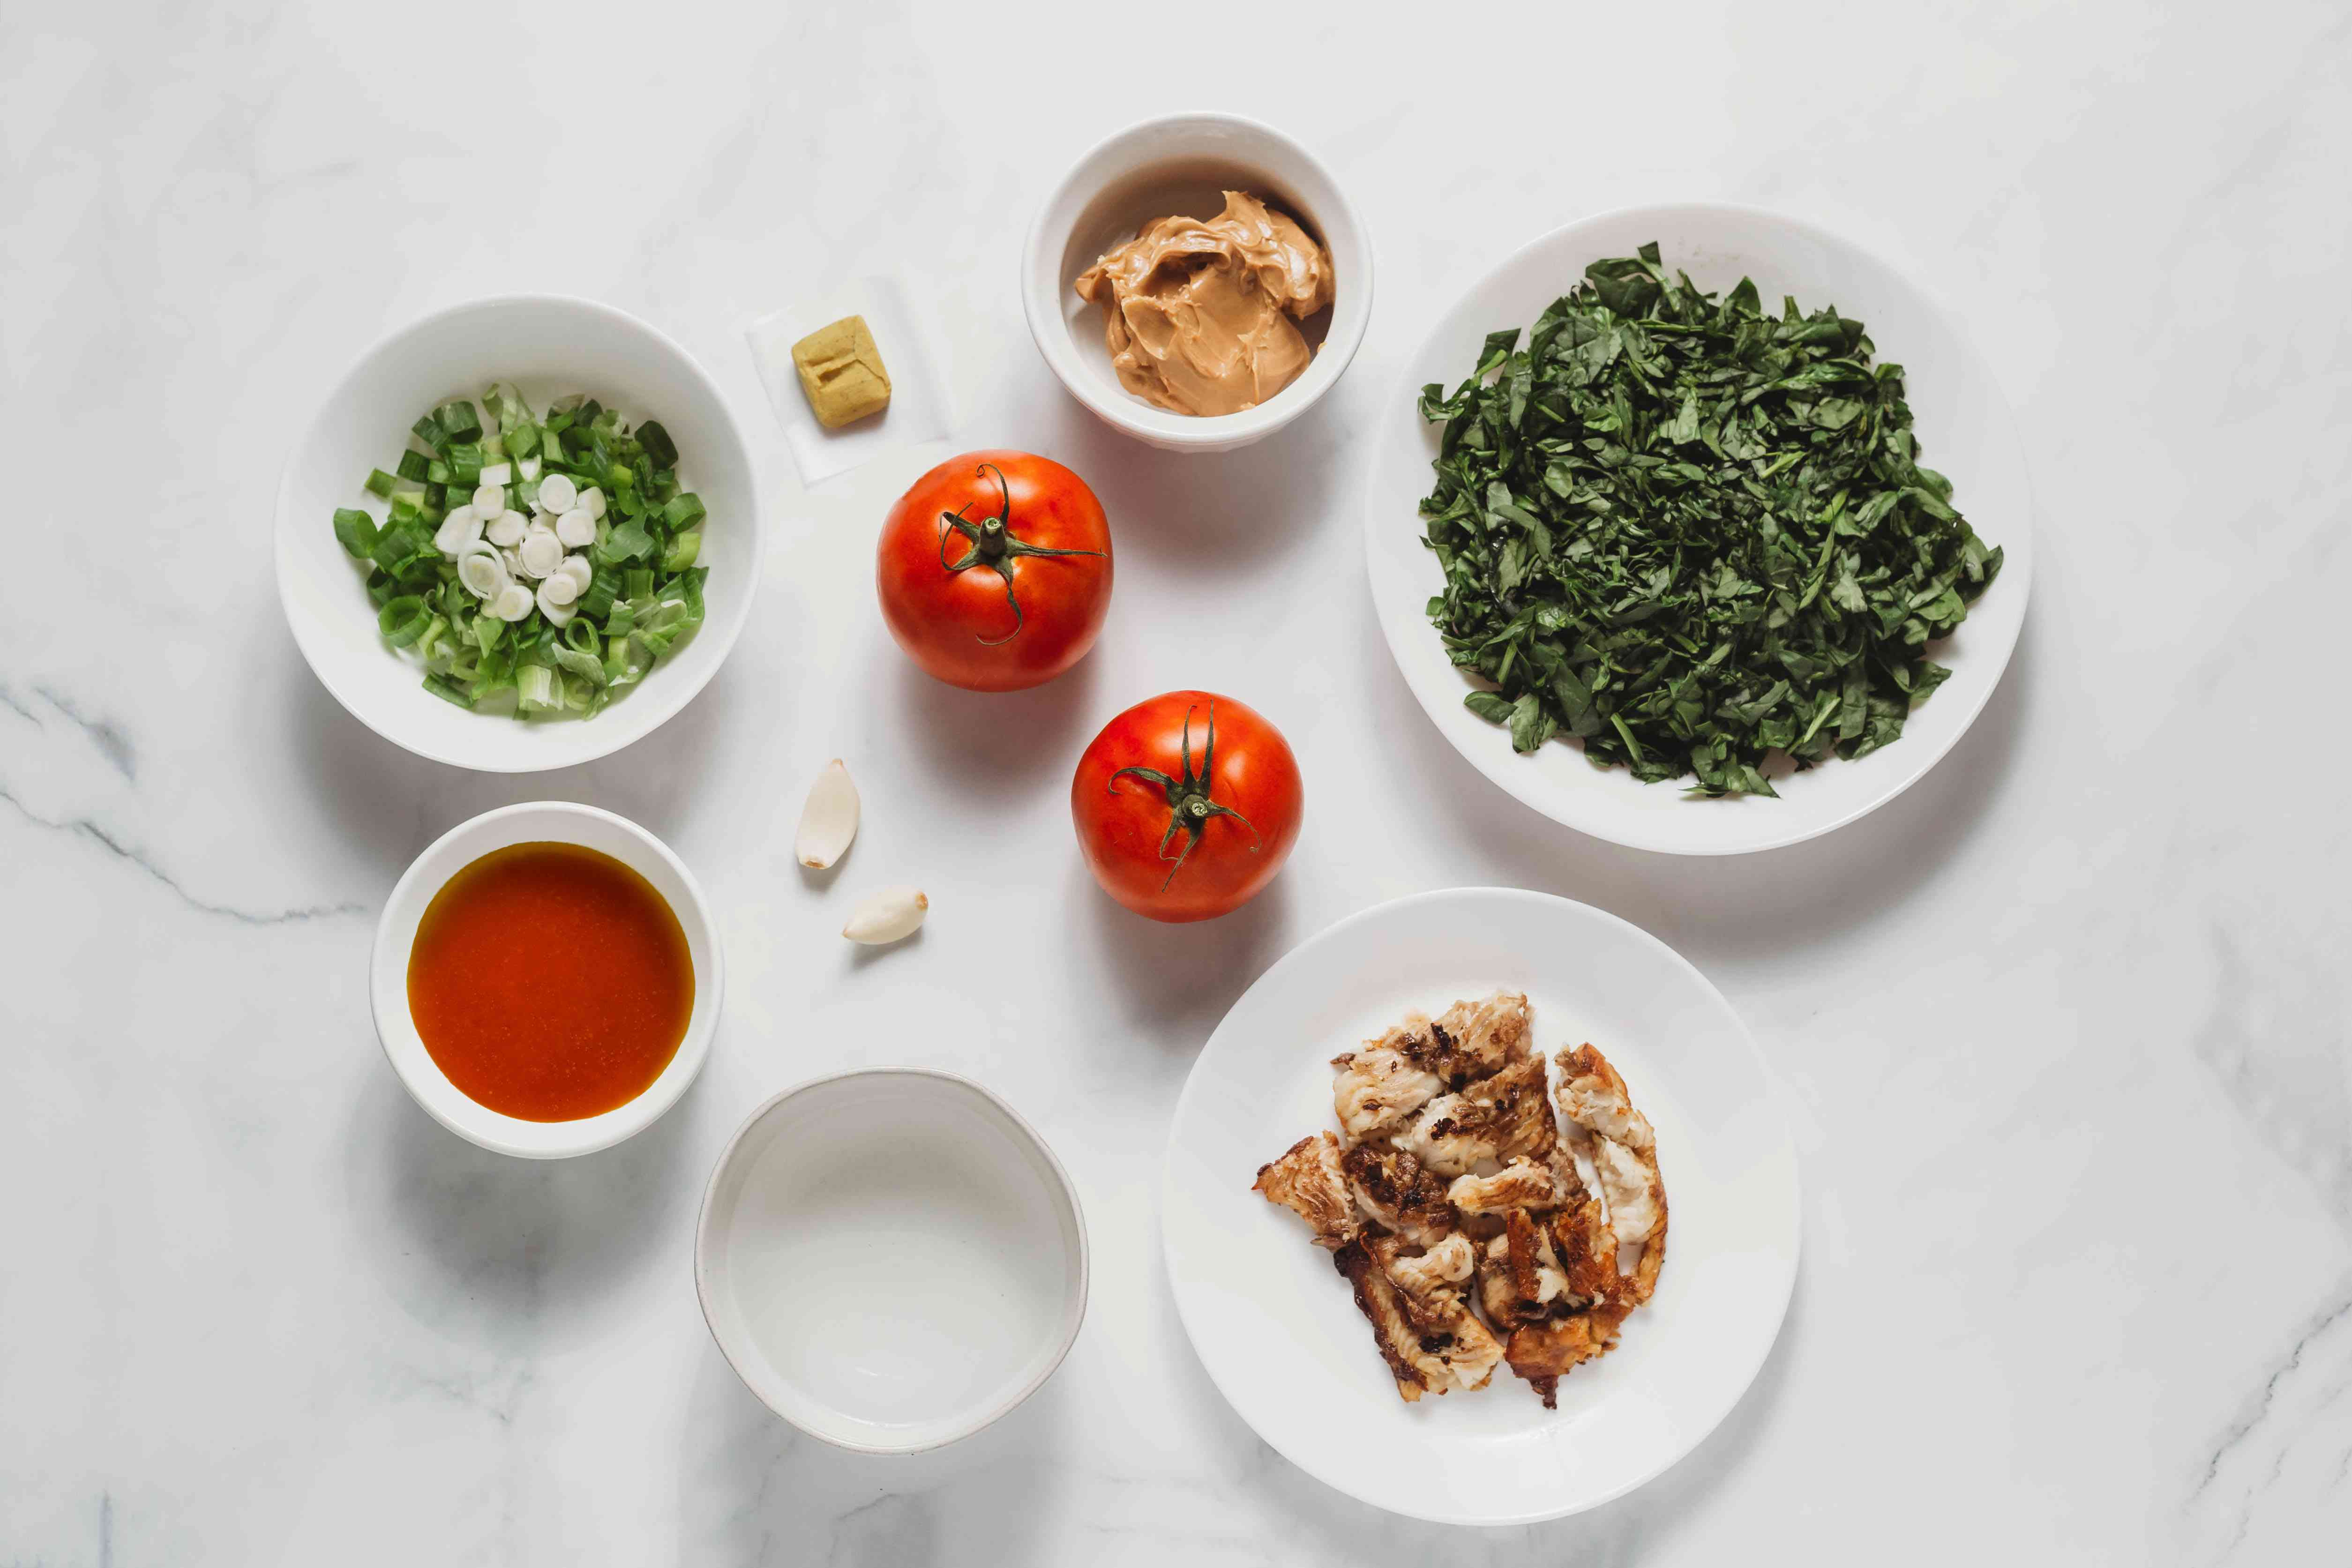 Fumbwa Recipe (Congolese Wild Spinach Stew) ingredients spinach, water, onion, garlic, tomatoes, stock cube, smoked fish, palm oil, ground peanuts